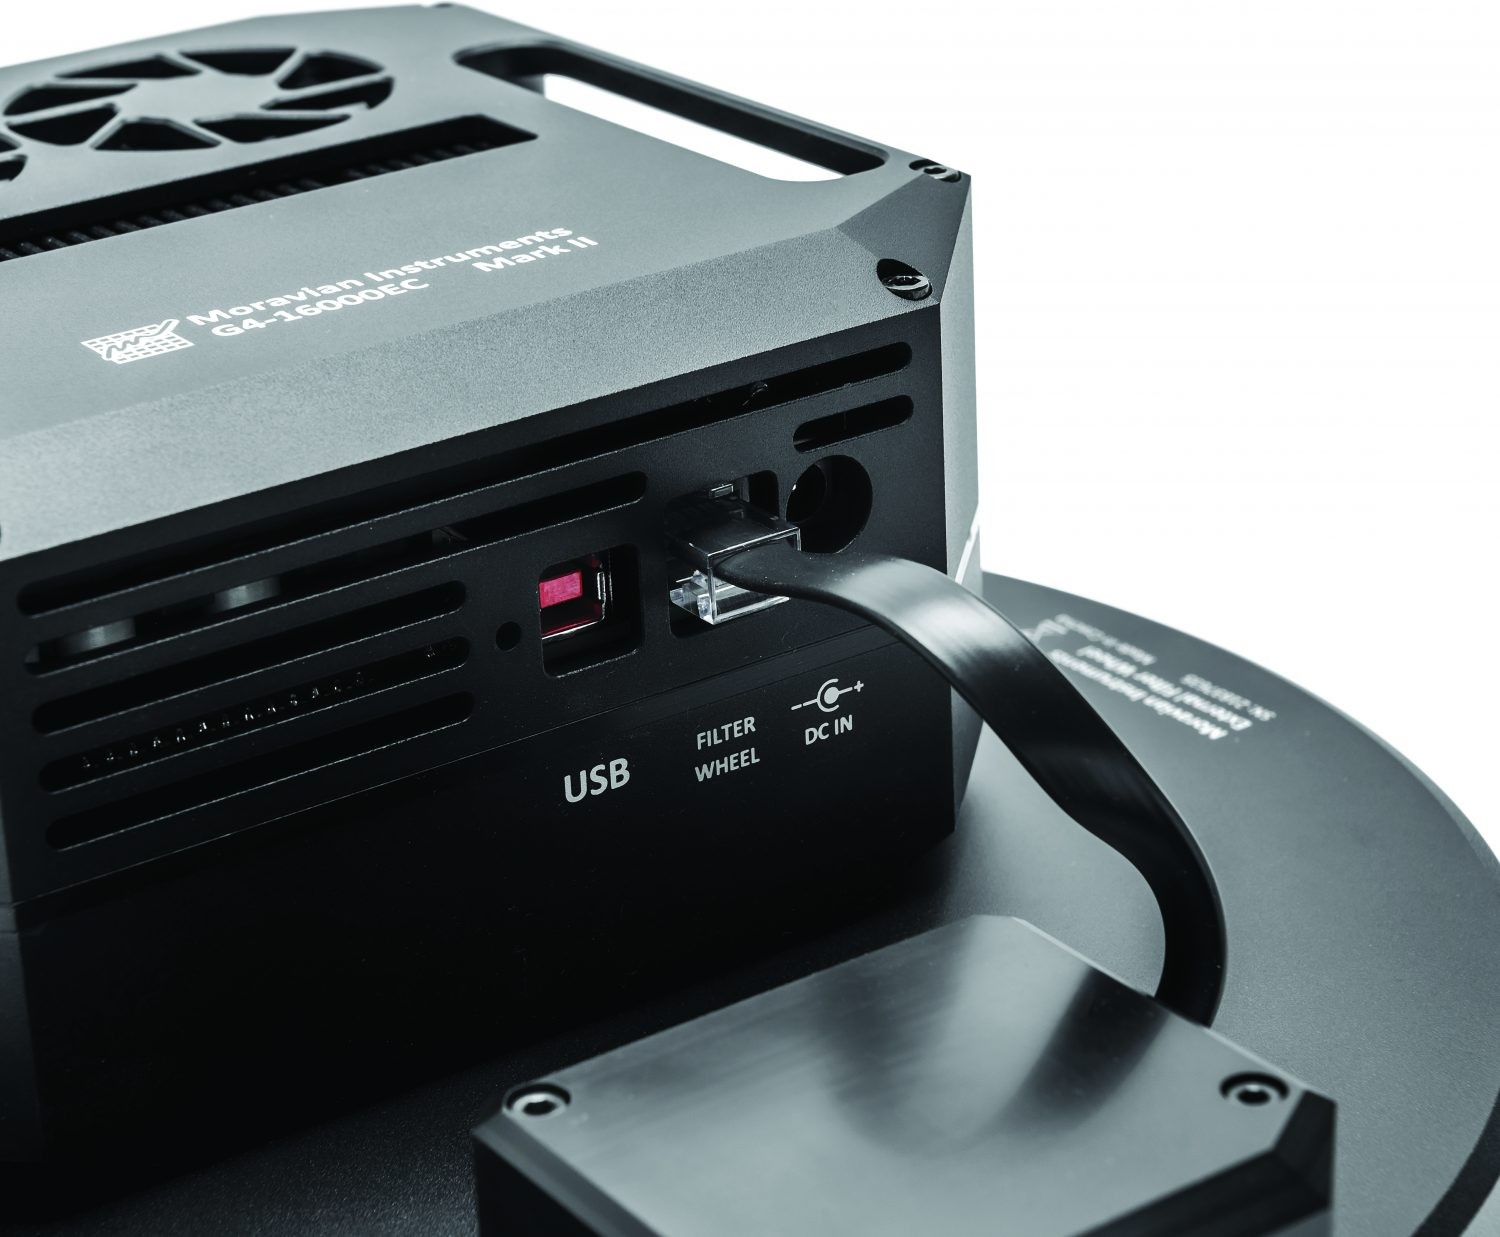 The G4-16000 has a built-in high-speed USB 2 connection.